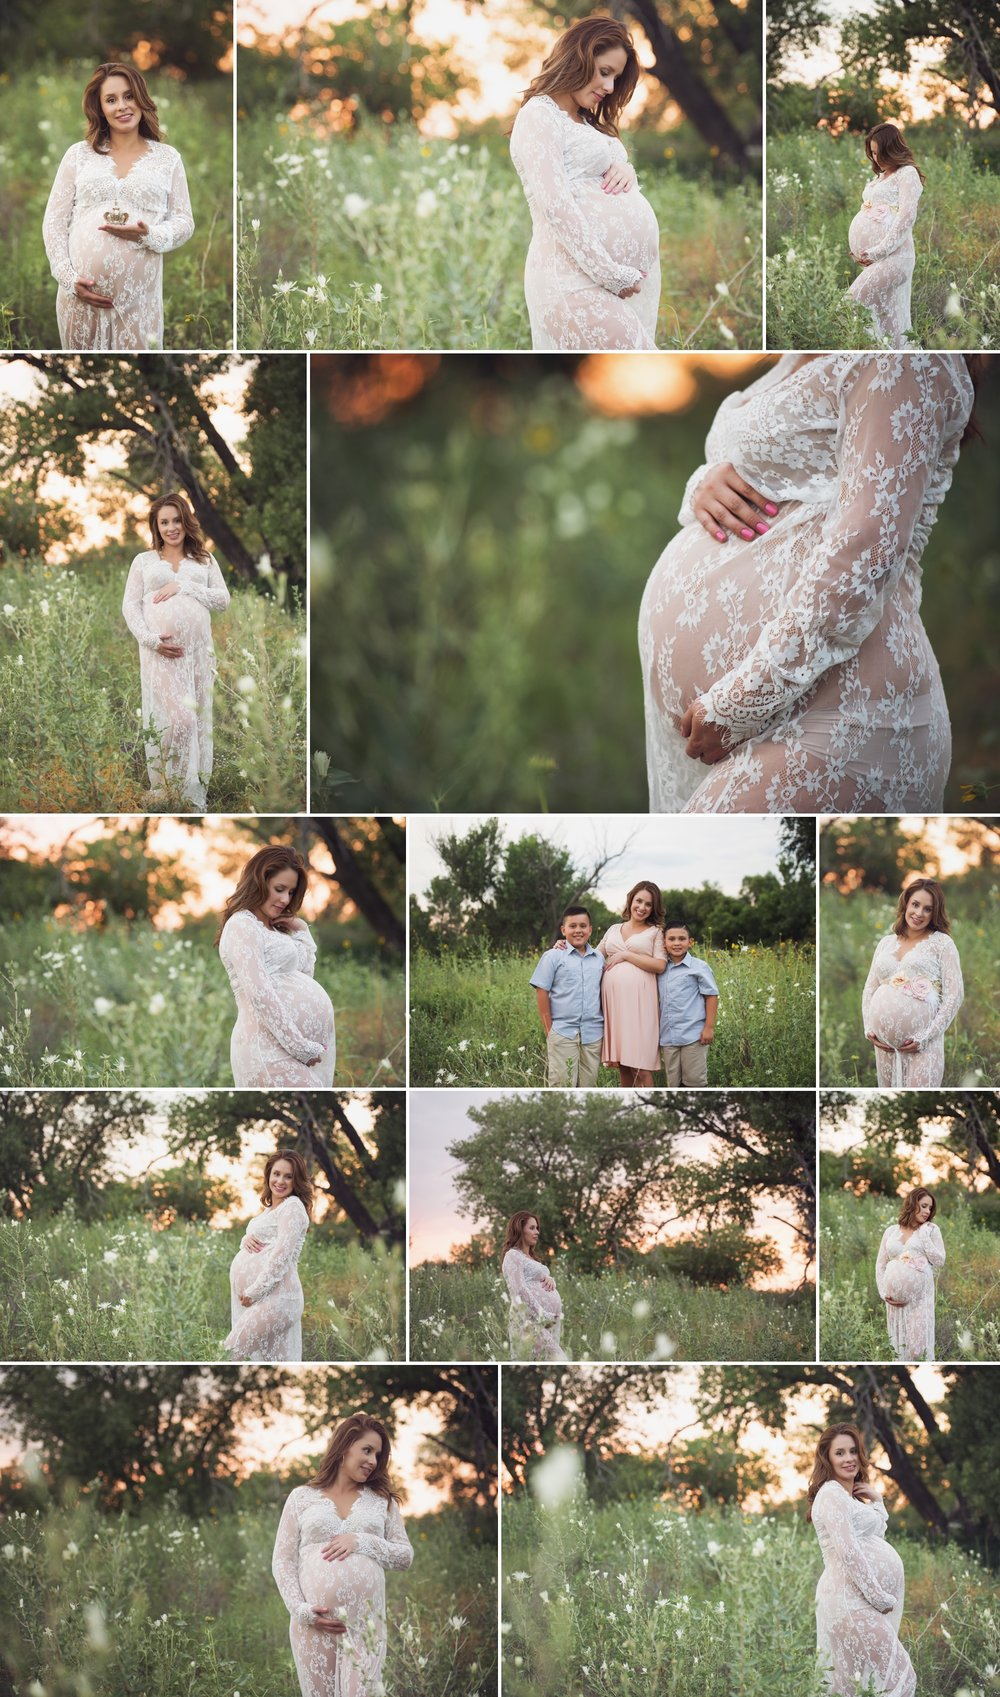 southwest-kansas-maternity-photography 1.jpg